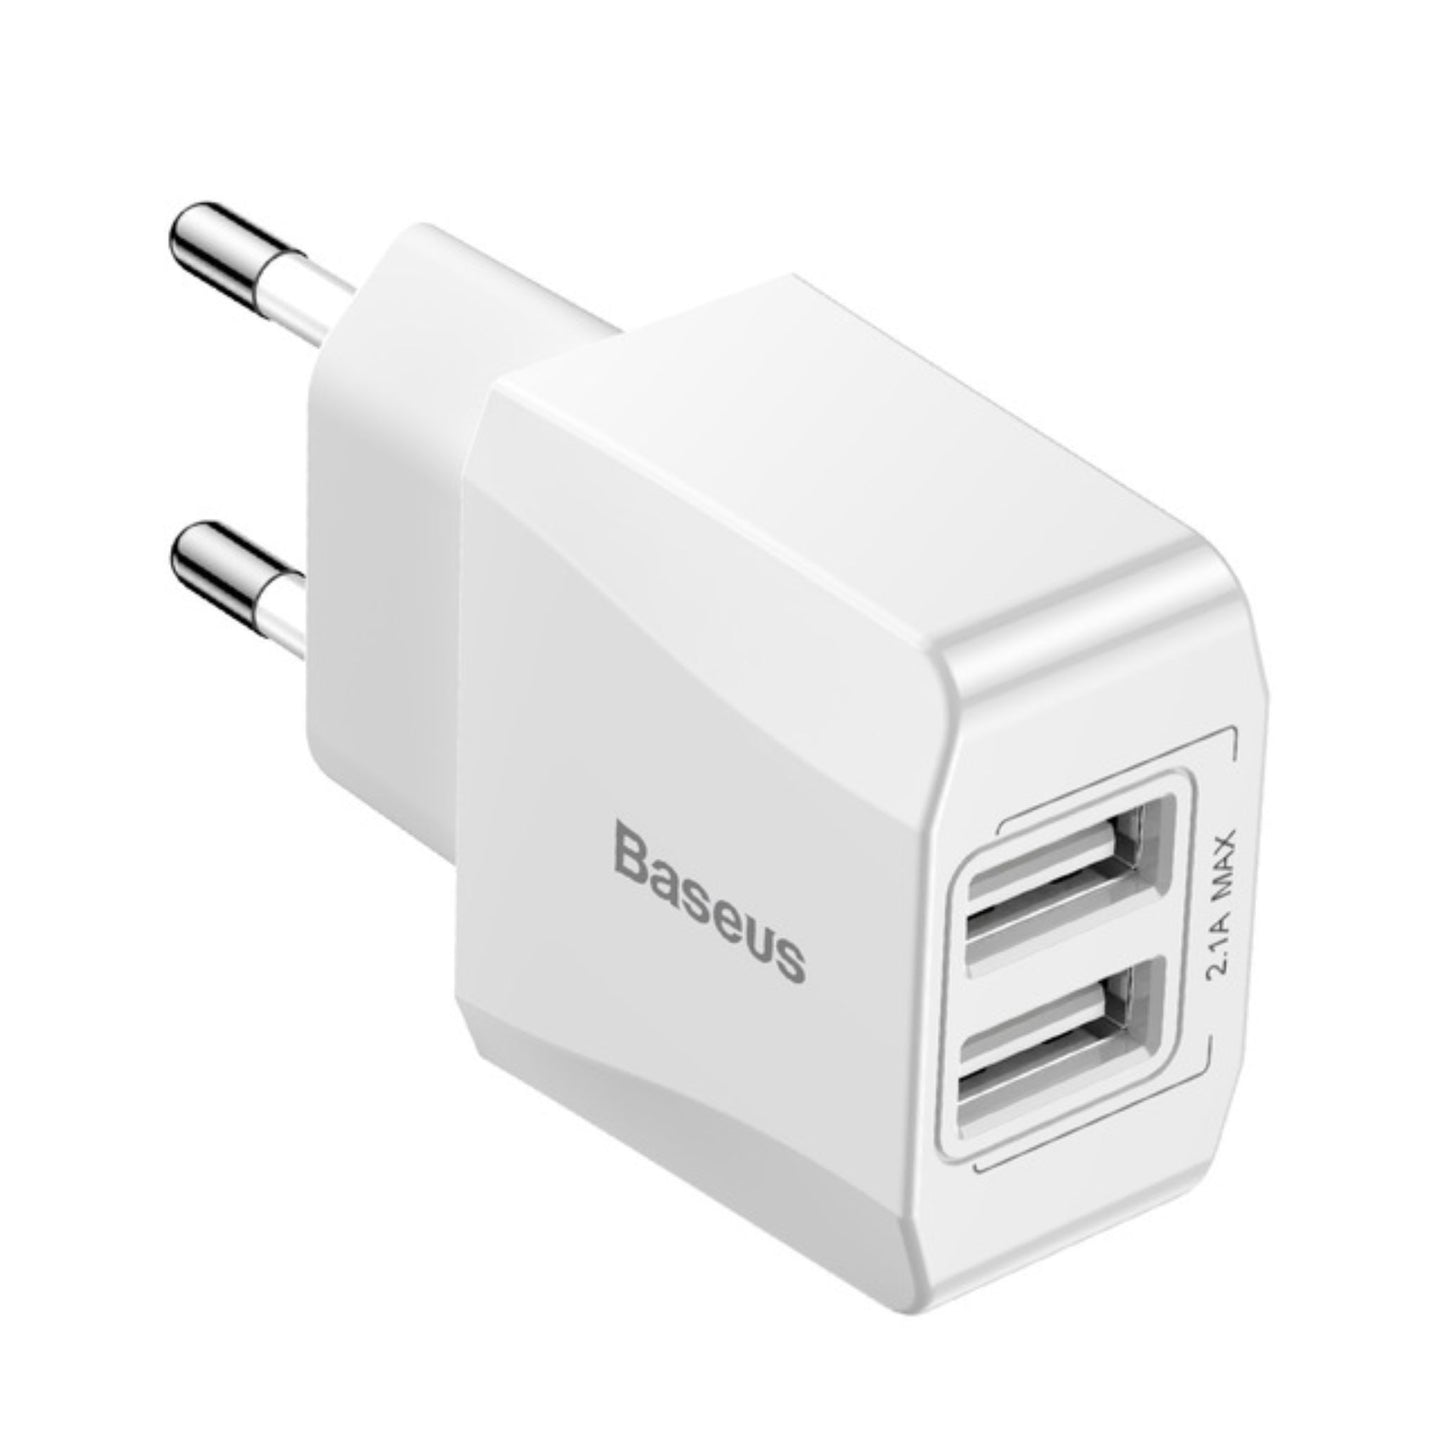 USB Charger - Double